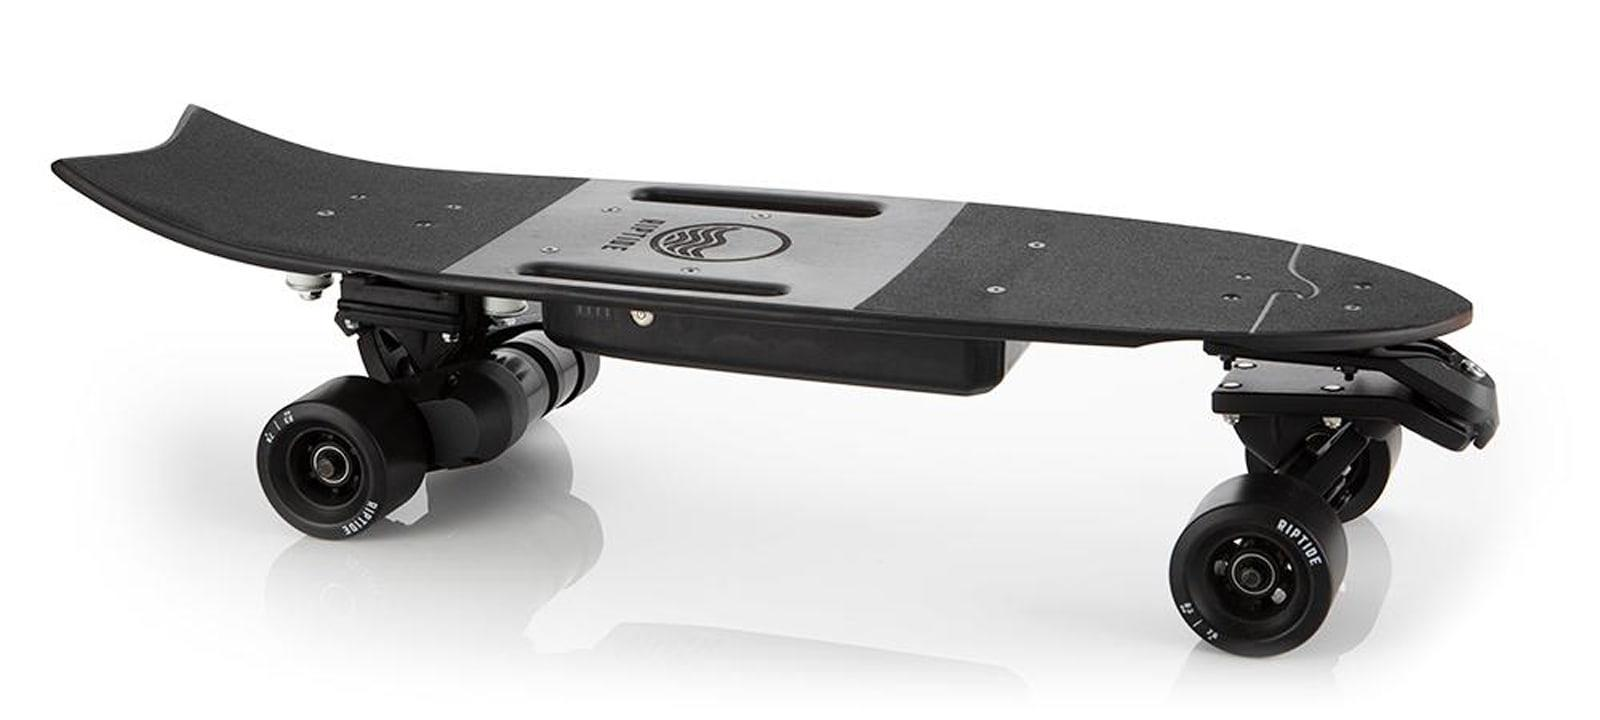 Riptide's latest electric skateboard carves like a surfboard | Engadget